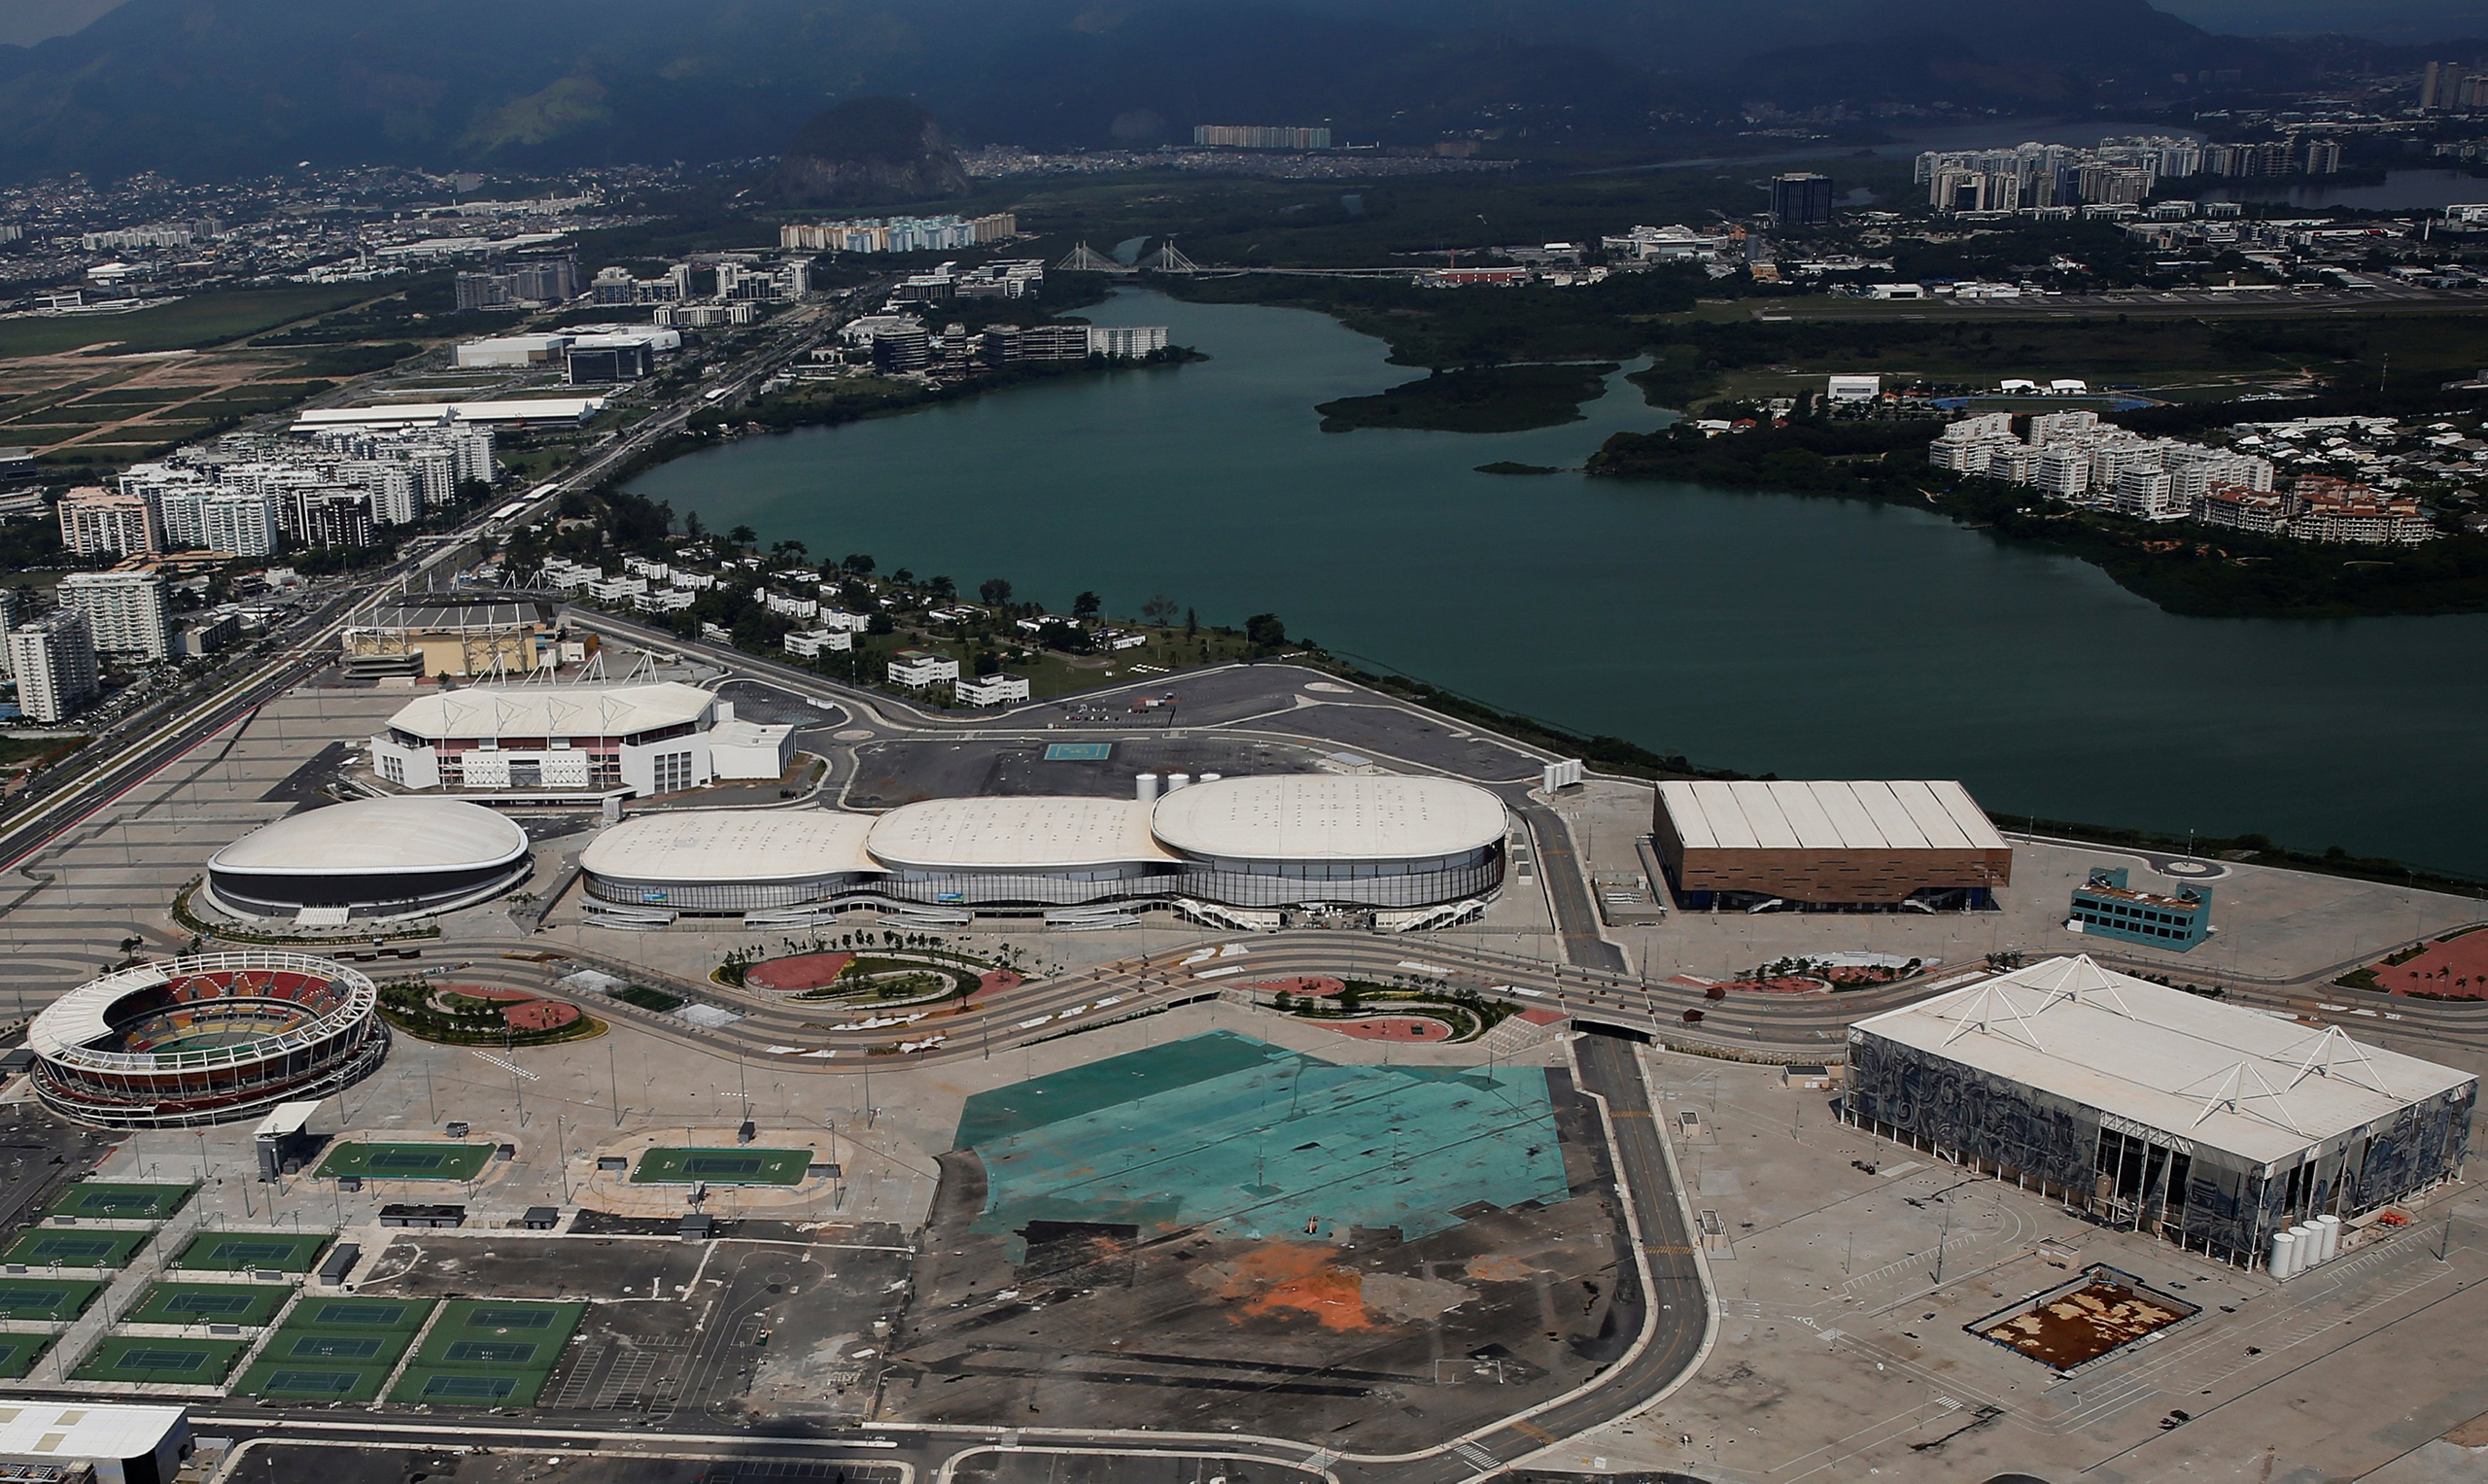 An aerial view shows the Olympic park which was used for the Rio 2016 Olympic Games, in Rio de Janeiro, Brazil on Jan. 15, 2017.